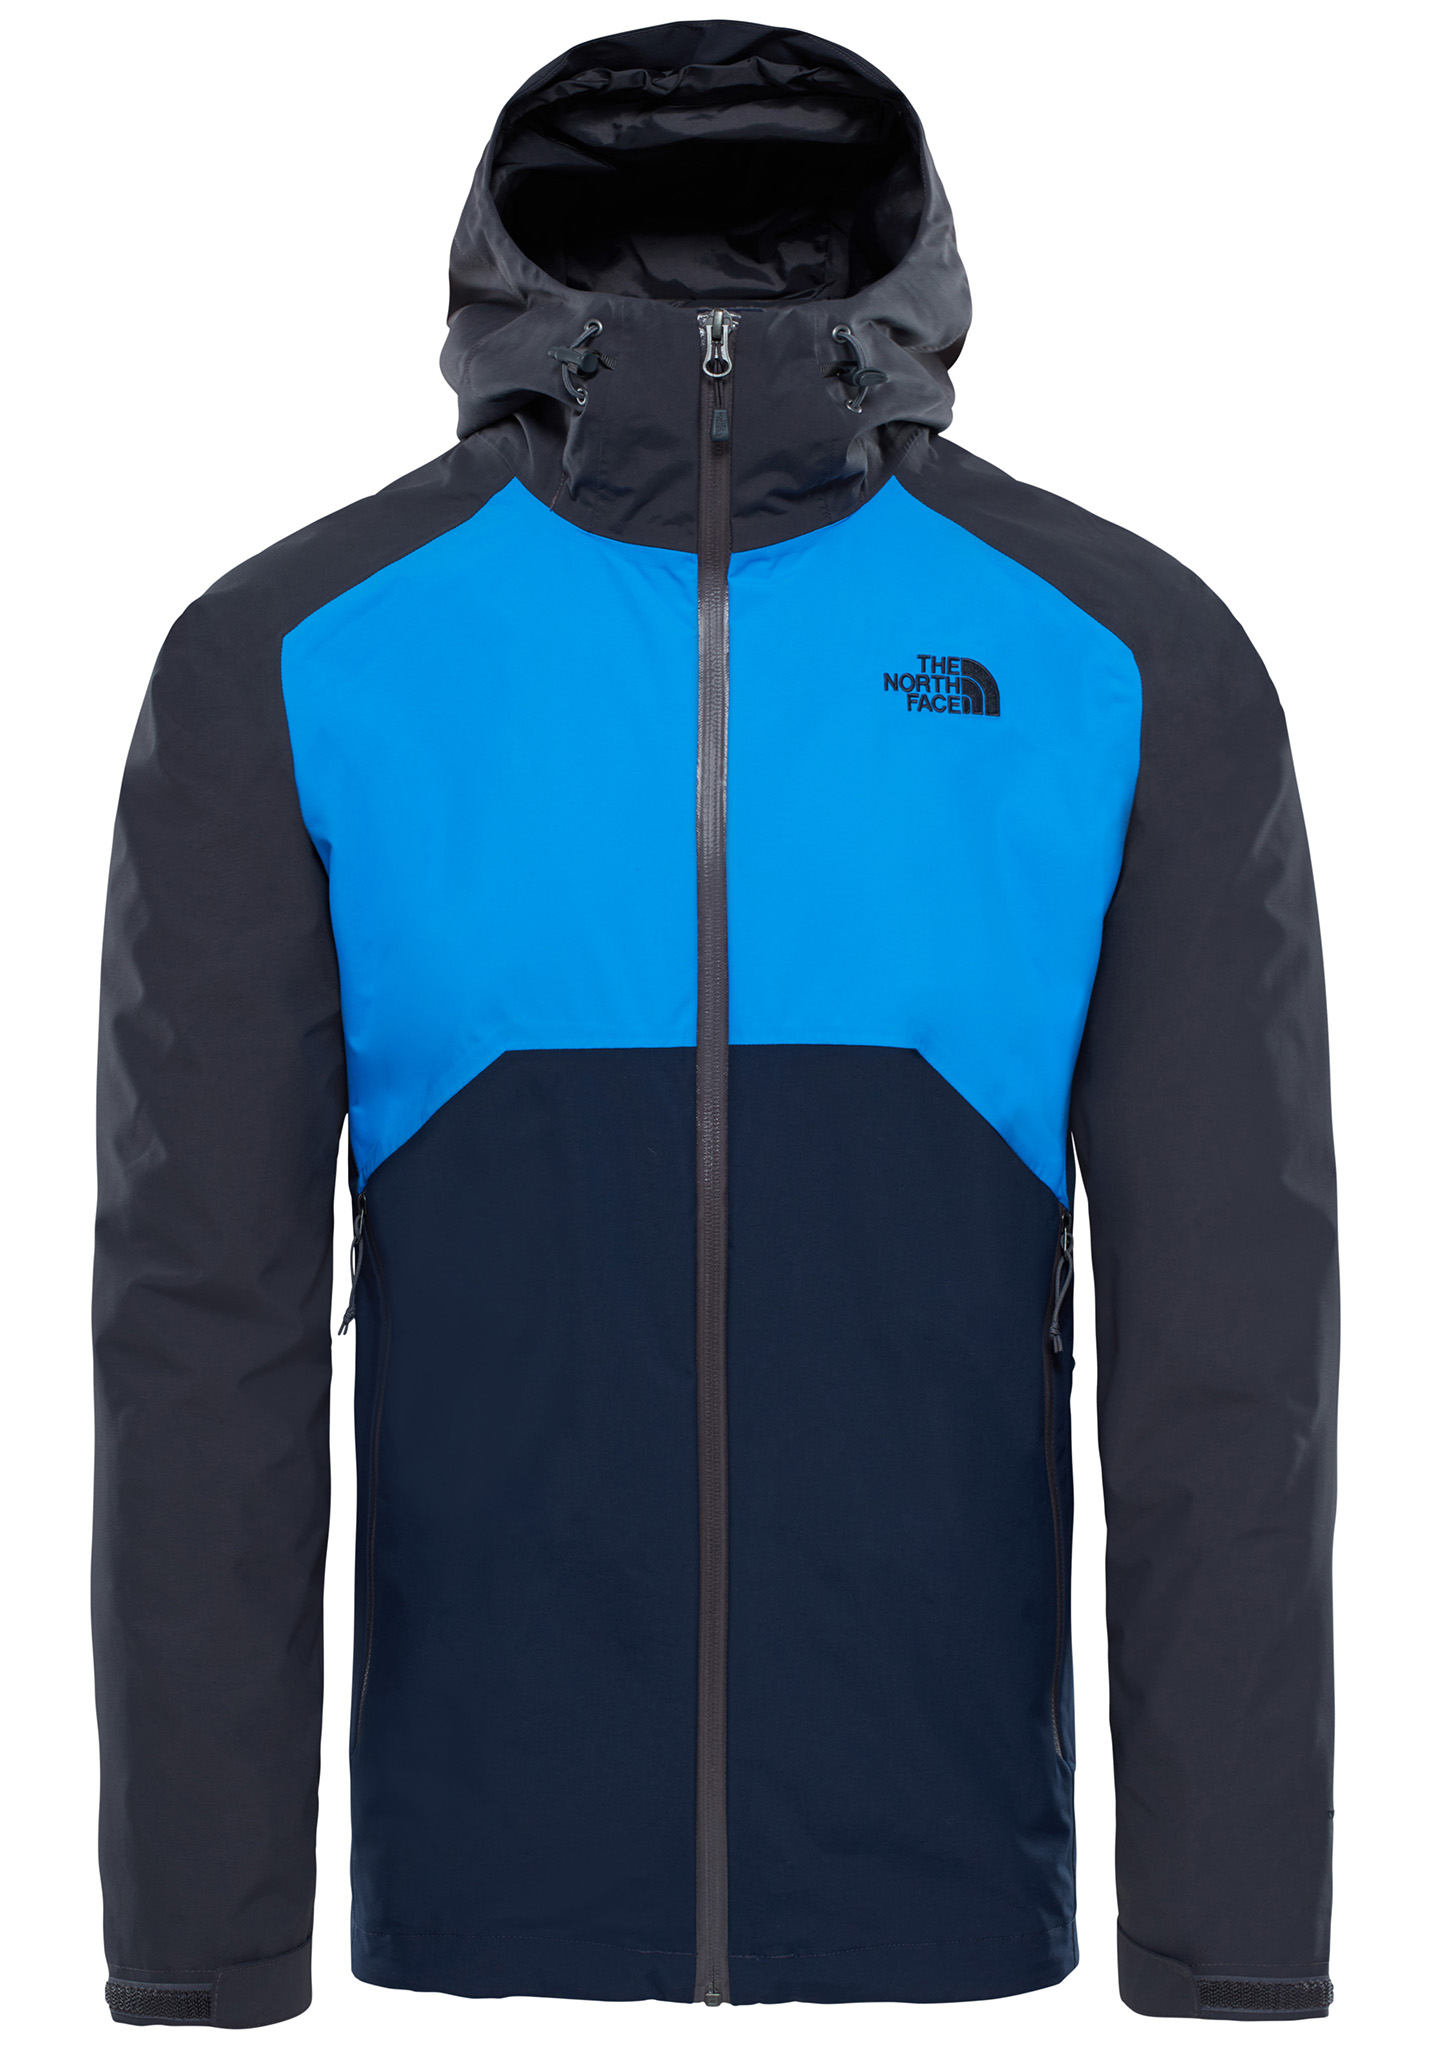 CHAQUETA IMPERMEABLE THE NORTH FACE STRATOS AZUL